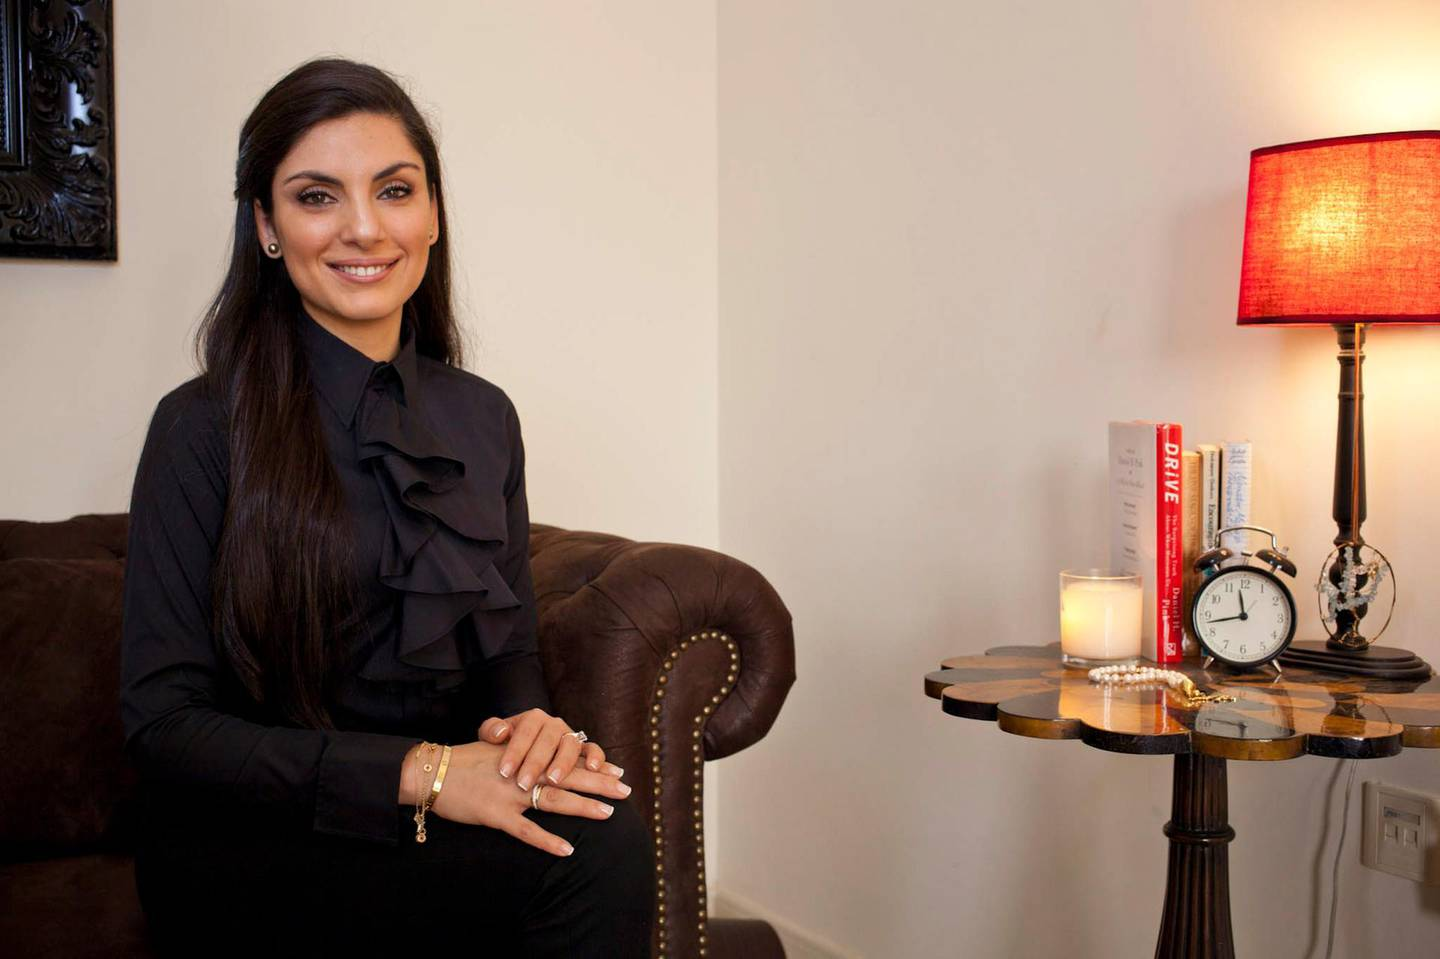 Dubai, United Arab Emirates - March 12 2014 - Dr. Saliha Afridi, Clinical Psychologist and Director of Lighthouse Arabia poses for a portrait at her office. Section: Business. Reporter: Andrea Anastasiou. (Razan Alzayani / The National).